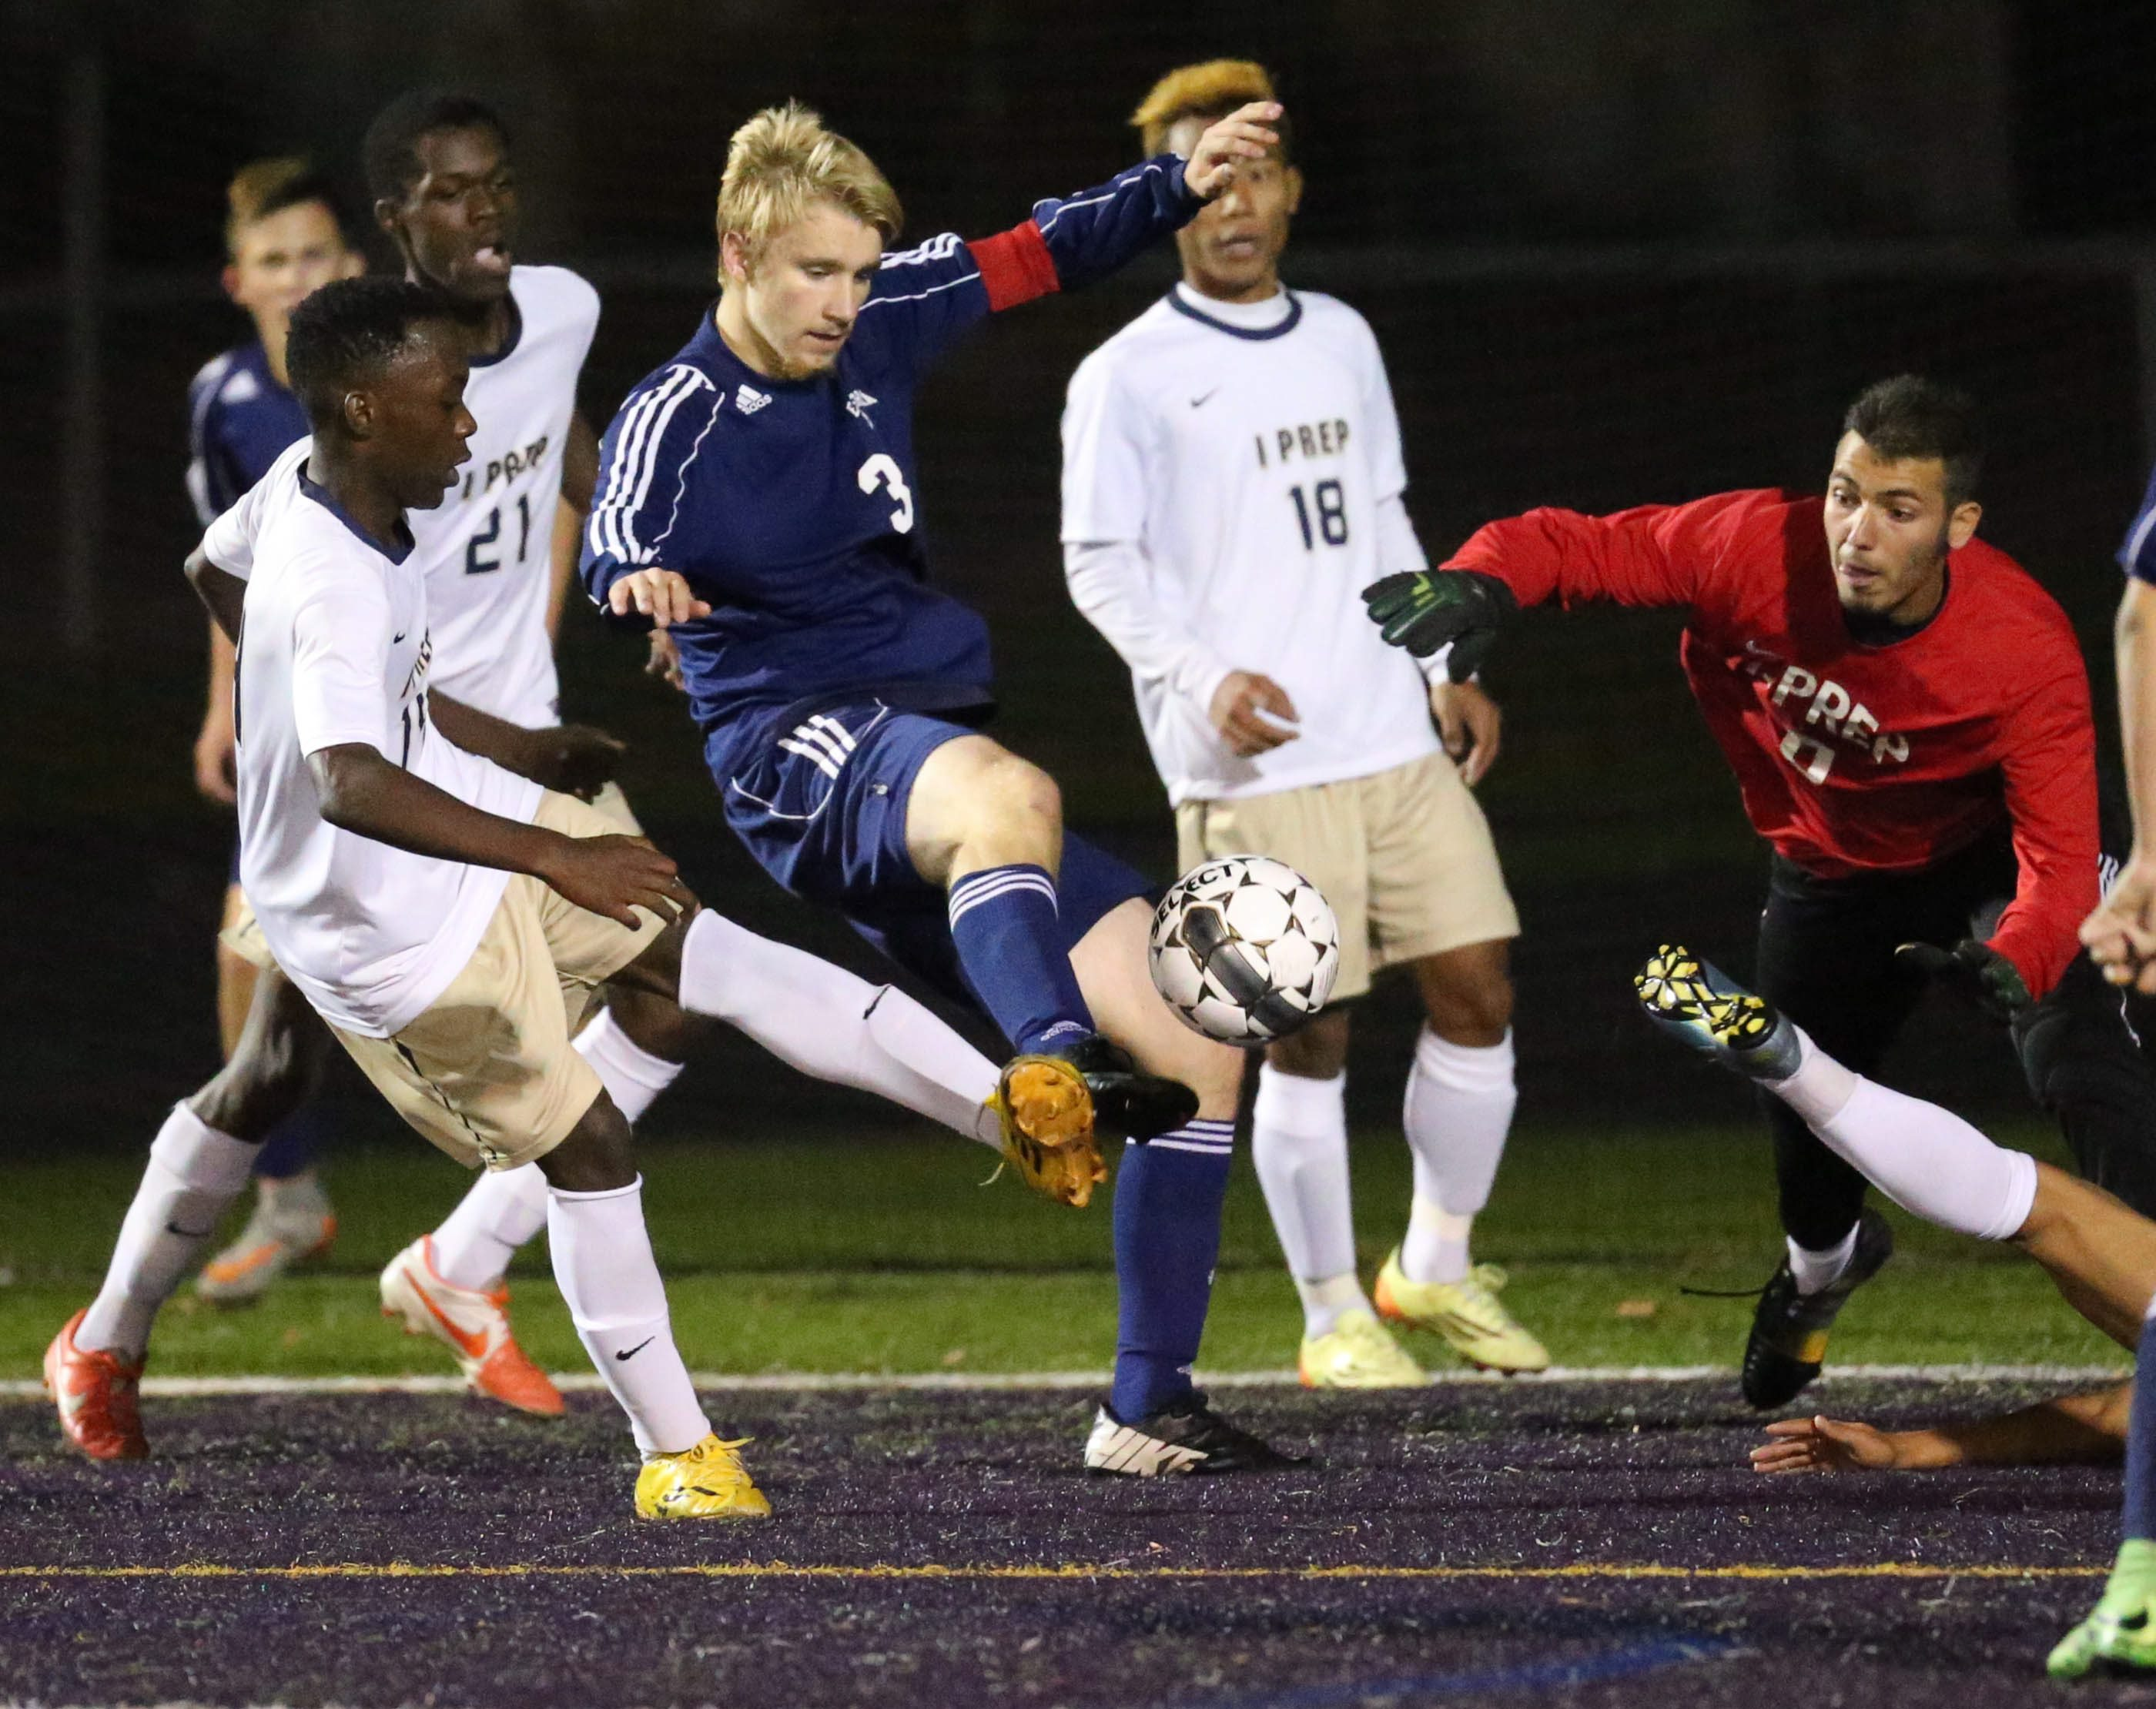 East Aurora's Noah Thompson battles I-Prep's Mugisho Bagalwa for the ball in the first half during the 2015 Section VI Class B overall final. (James P. McCoy/ Buffalo News)